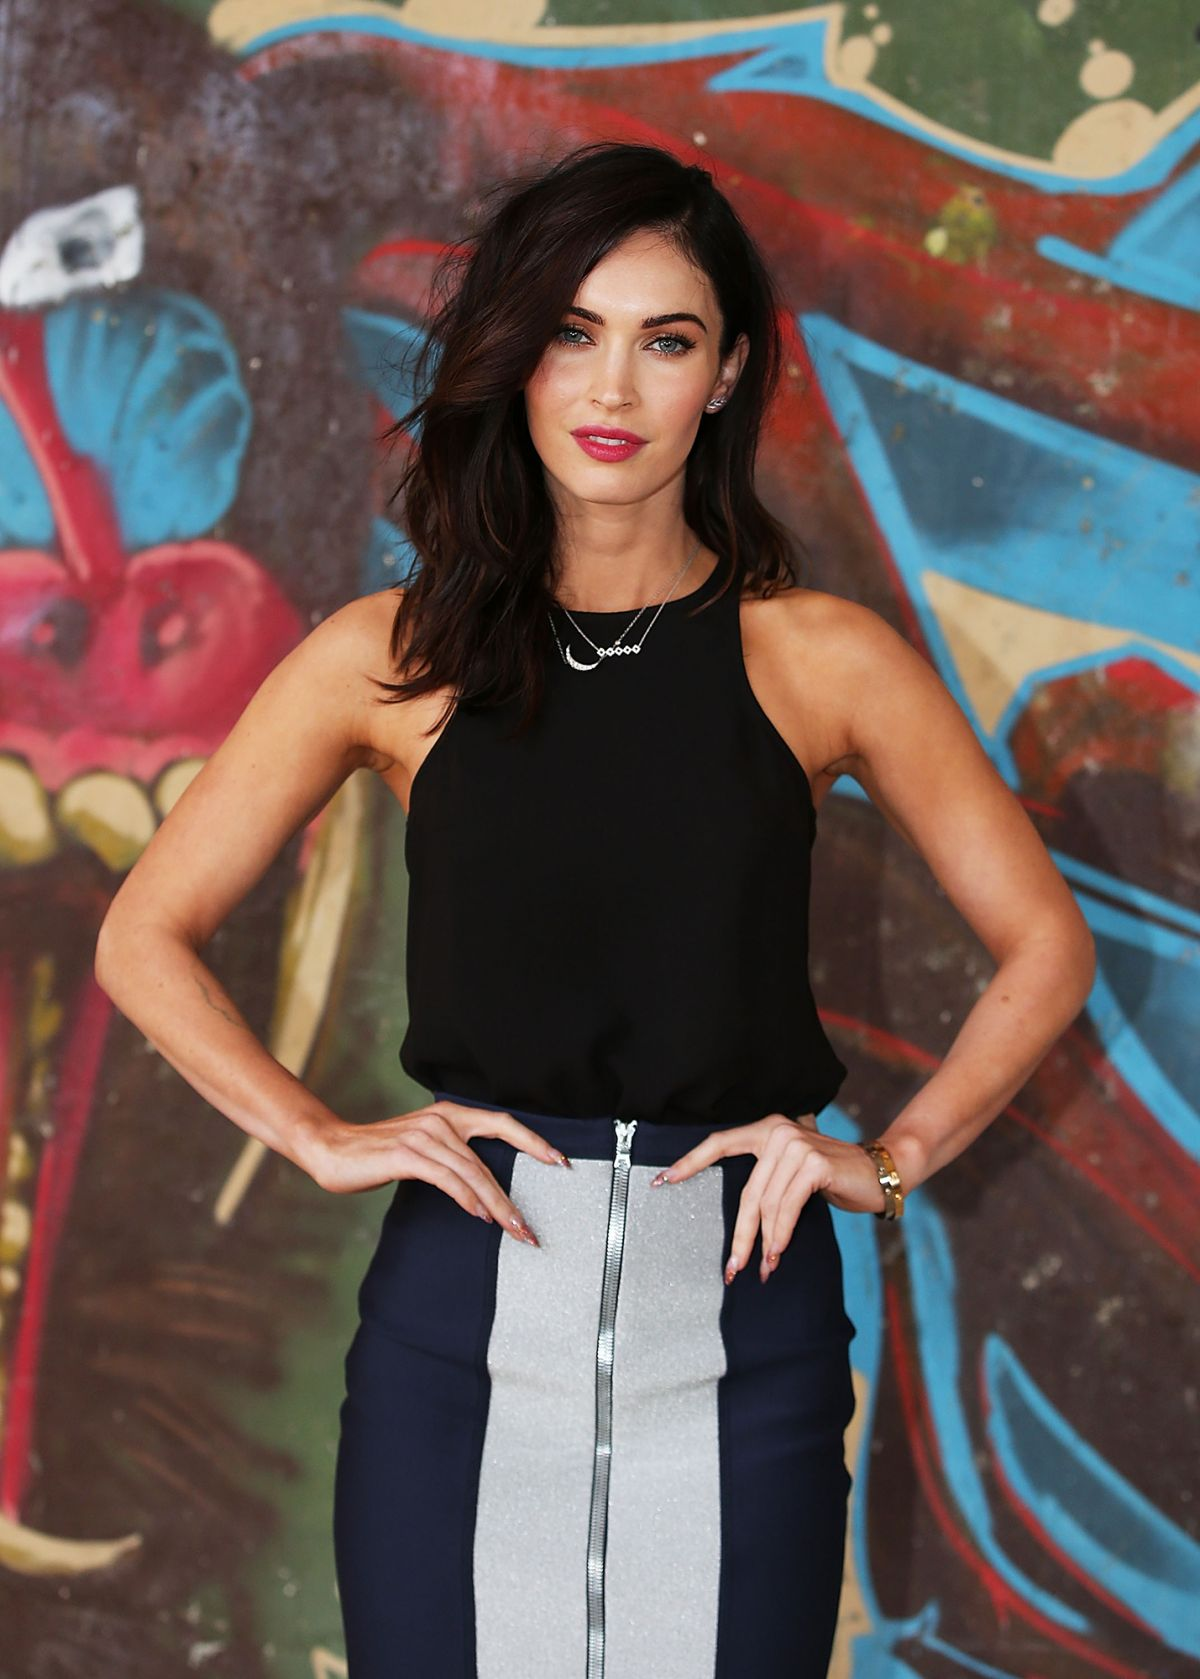 MEGAN FOX at Teenage Mutant Ninja Turtles Photocall in Sydney